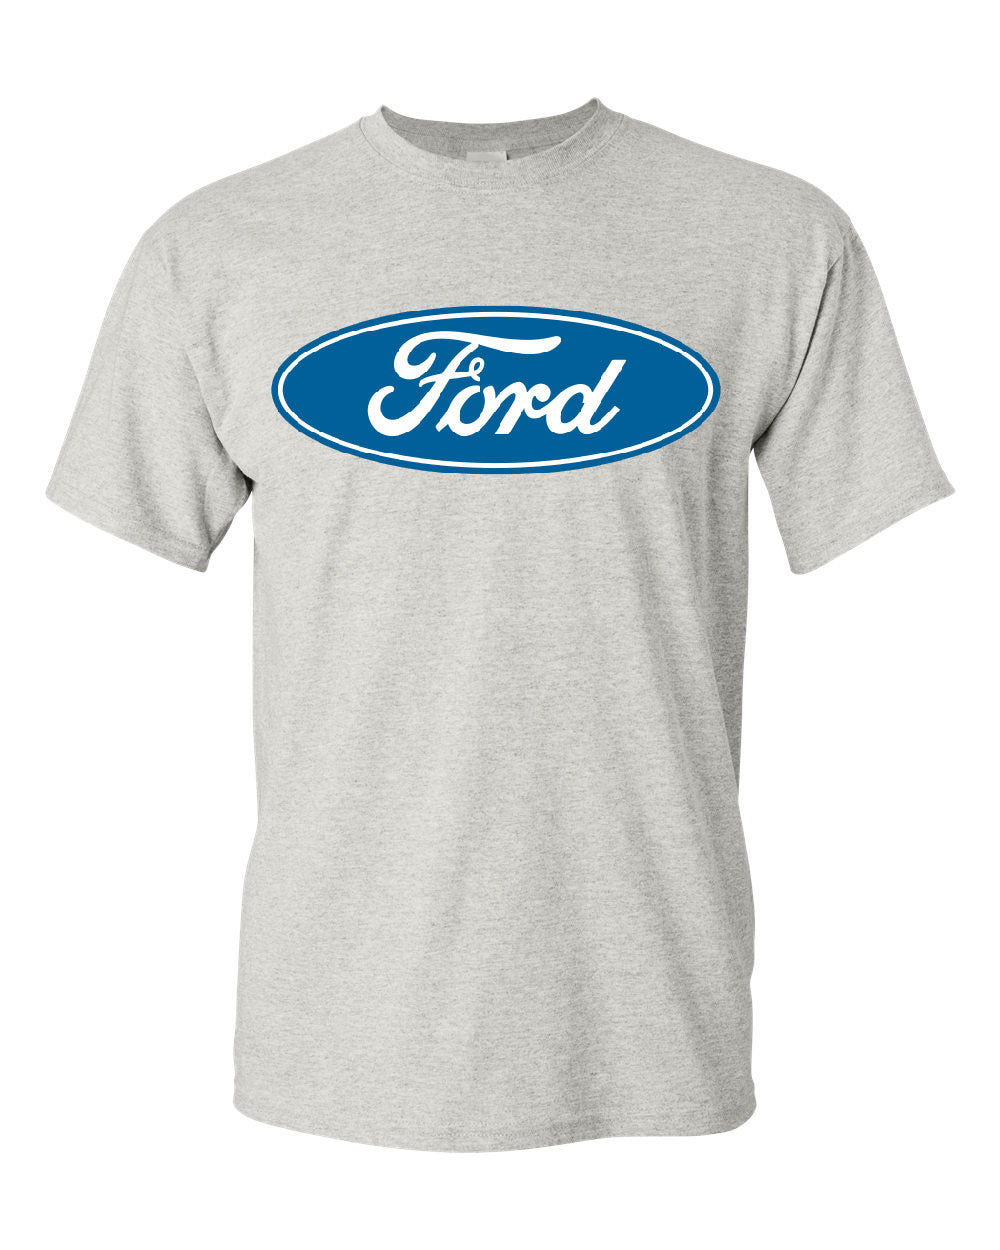 licensed ford logo t shirt truck mustang f150 muscle car. Black Bedroom Furniture Sets. Home Design Ideas